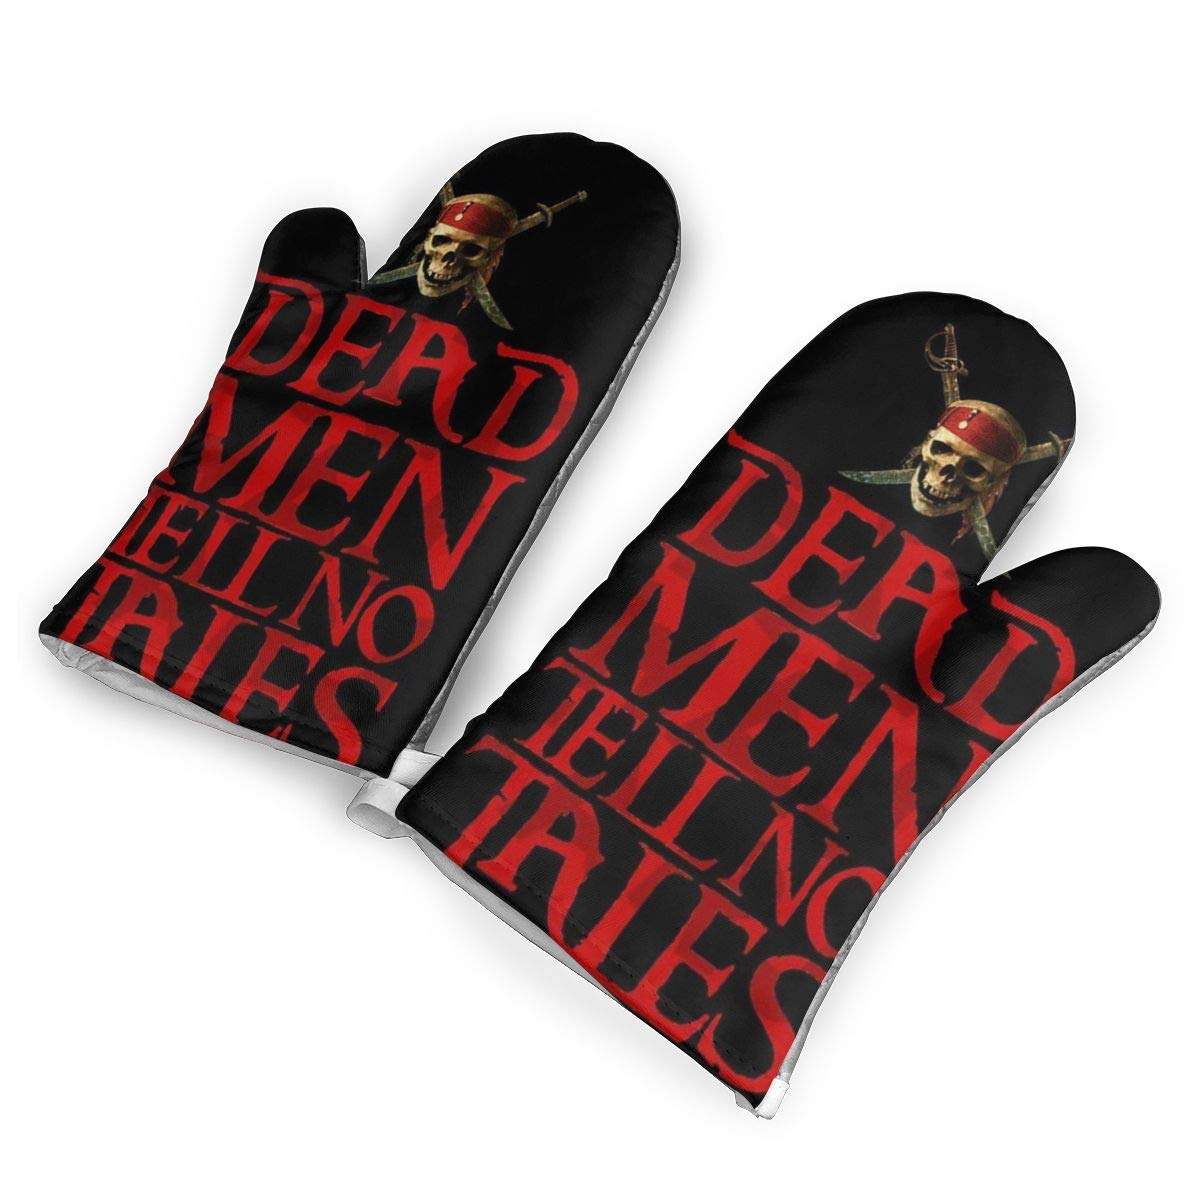 QOQD Pirates of The Caribbean Dead Oven Mitts with Polyester Fabric Printed Pattern,1 Pair of Heat Resistant Oven Gloves for Cooking,Grilling,Barbecue Potholders